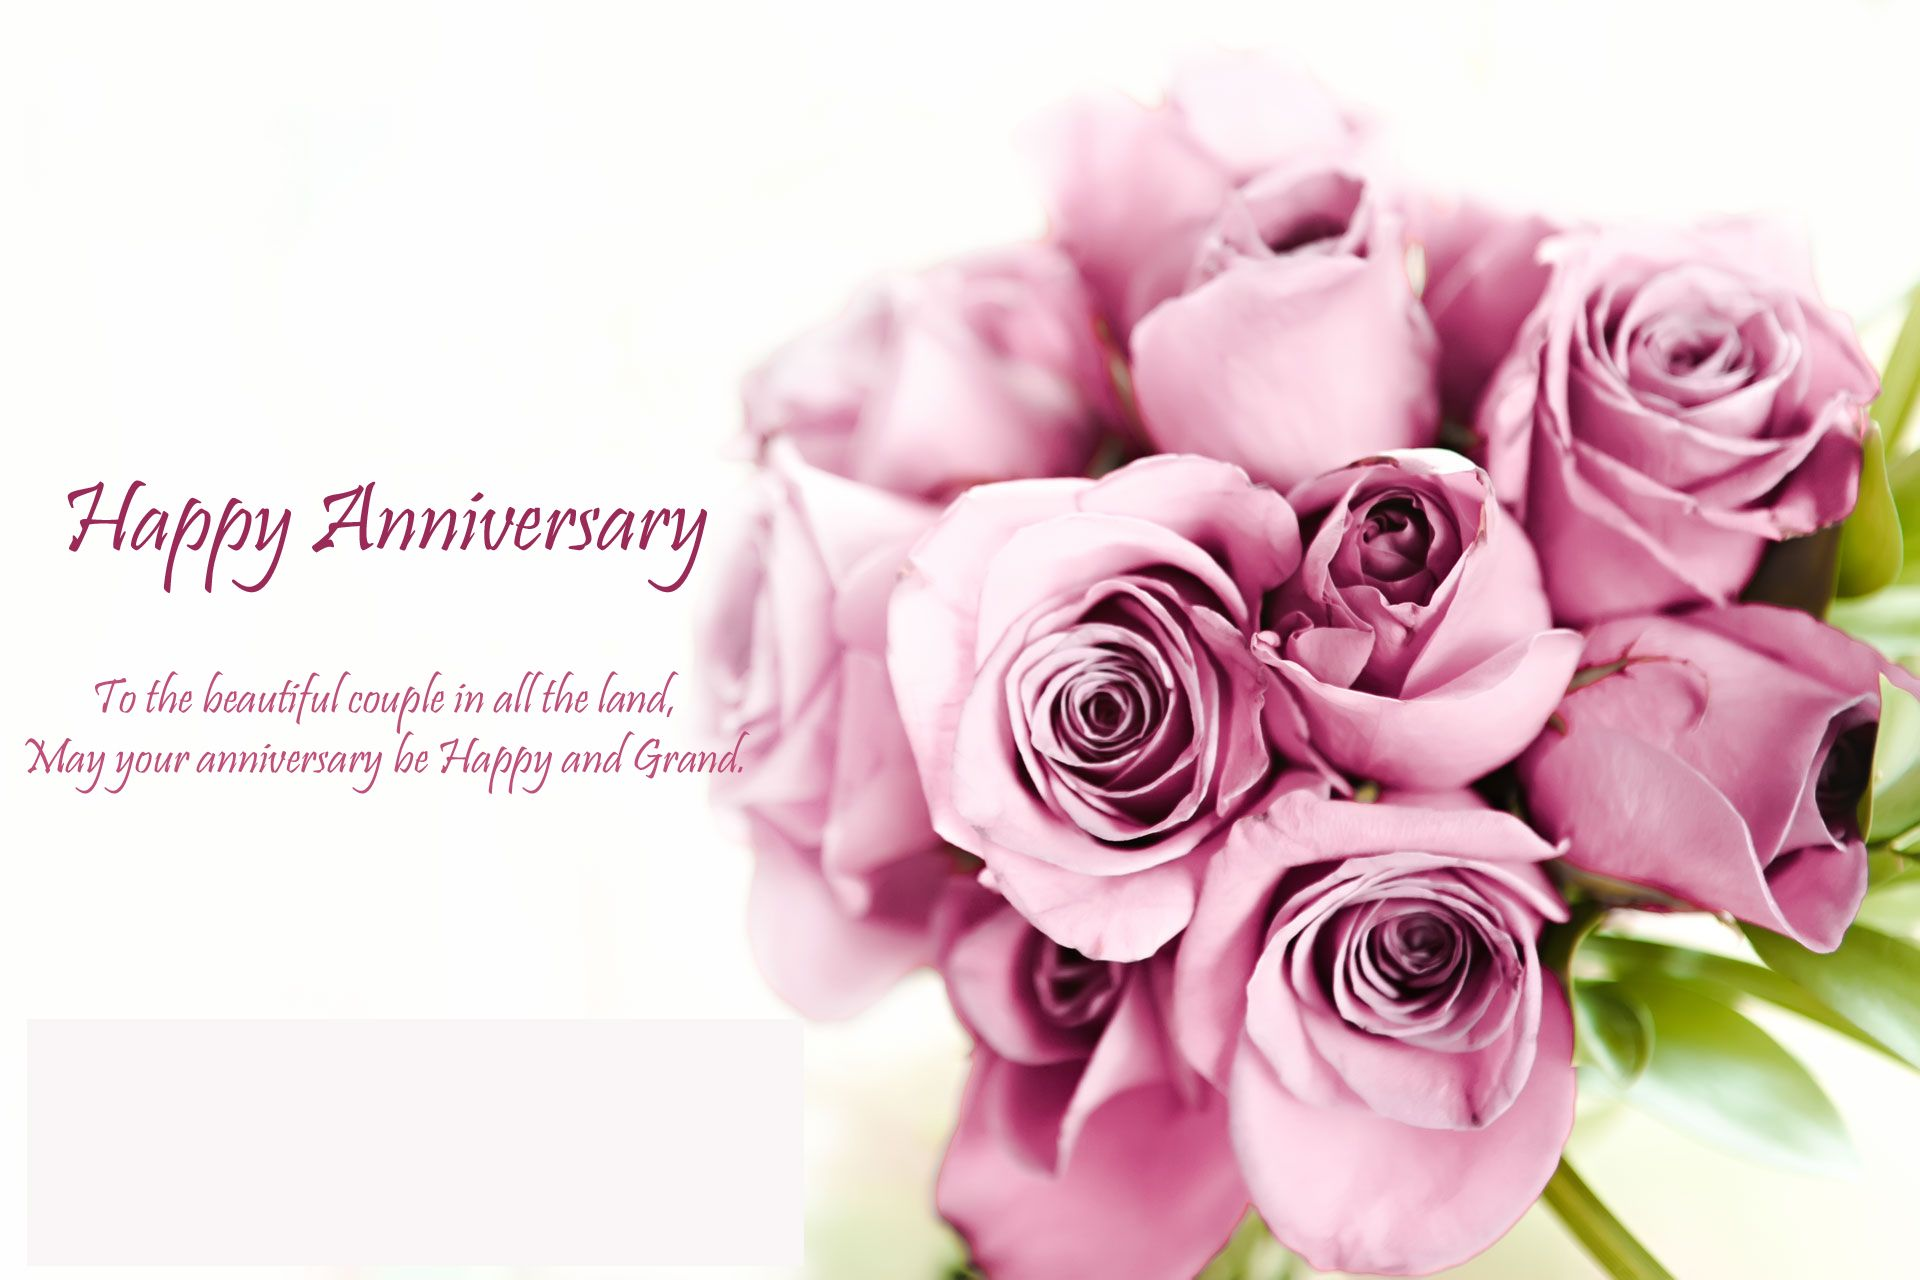 Happy anniversary greetings for husband wife or couple famous happy anniversary greetings for husband wife or couple kristyandbryce Image collections